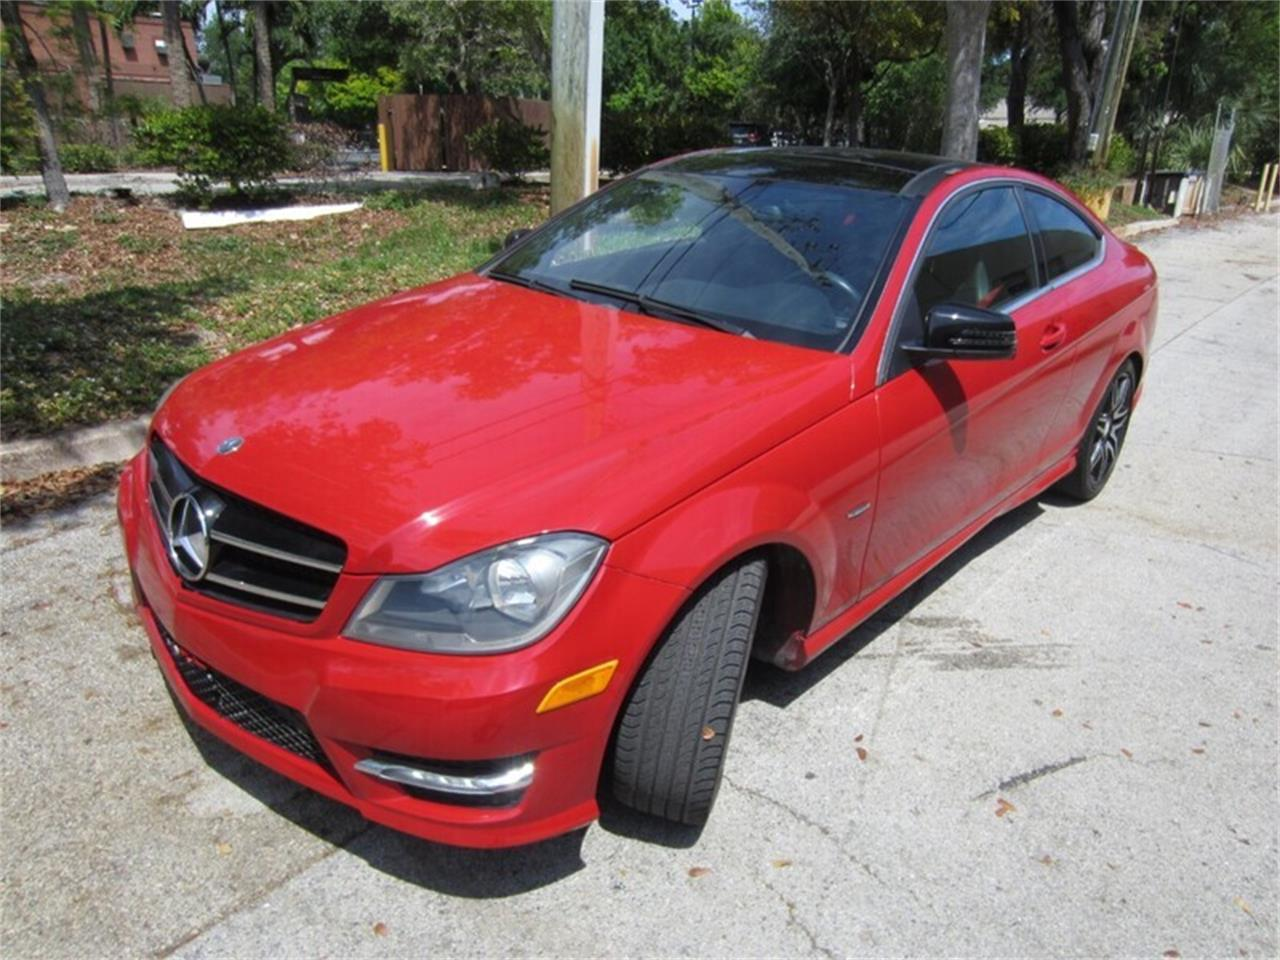 2013 Mercedes-Benz C250 for sale in Delray Beach, FL – photo 2